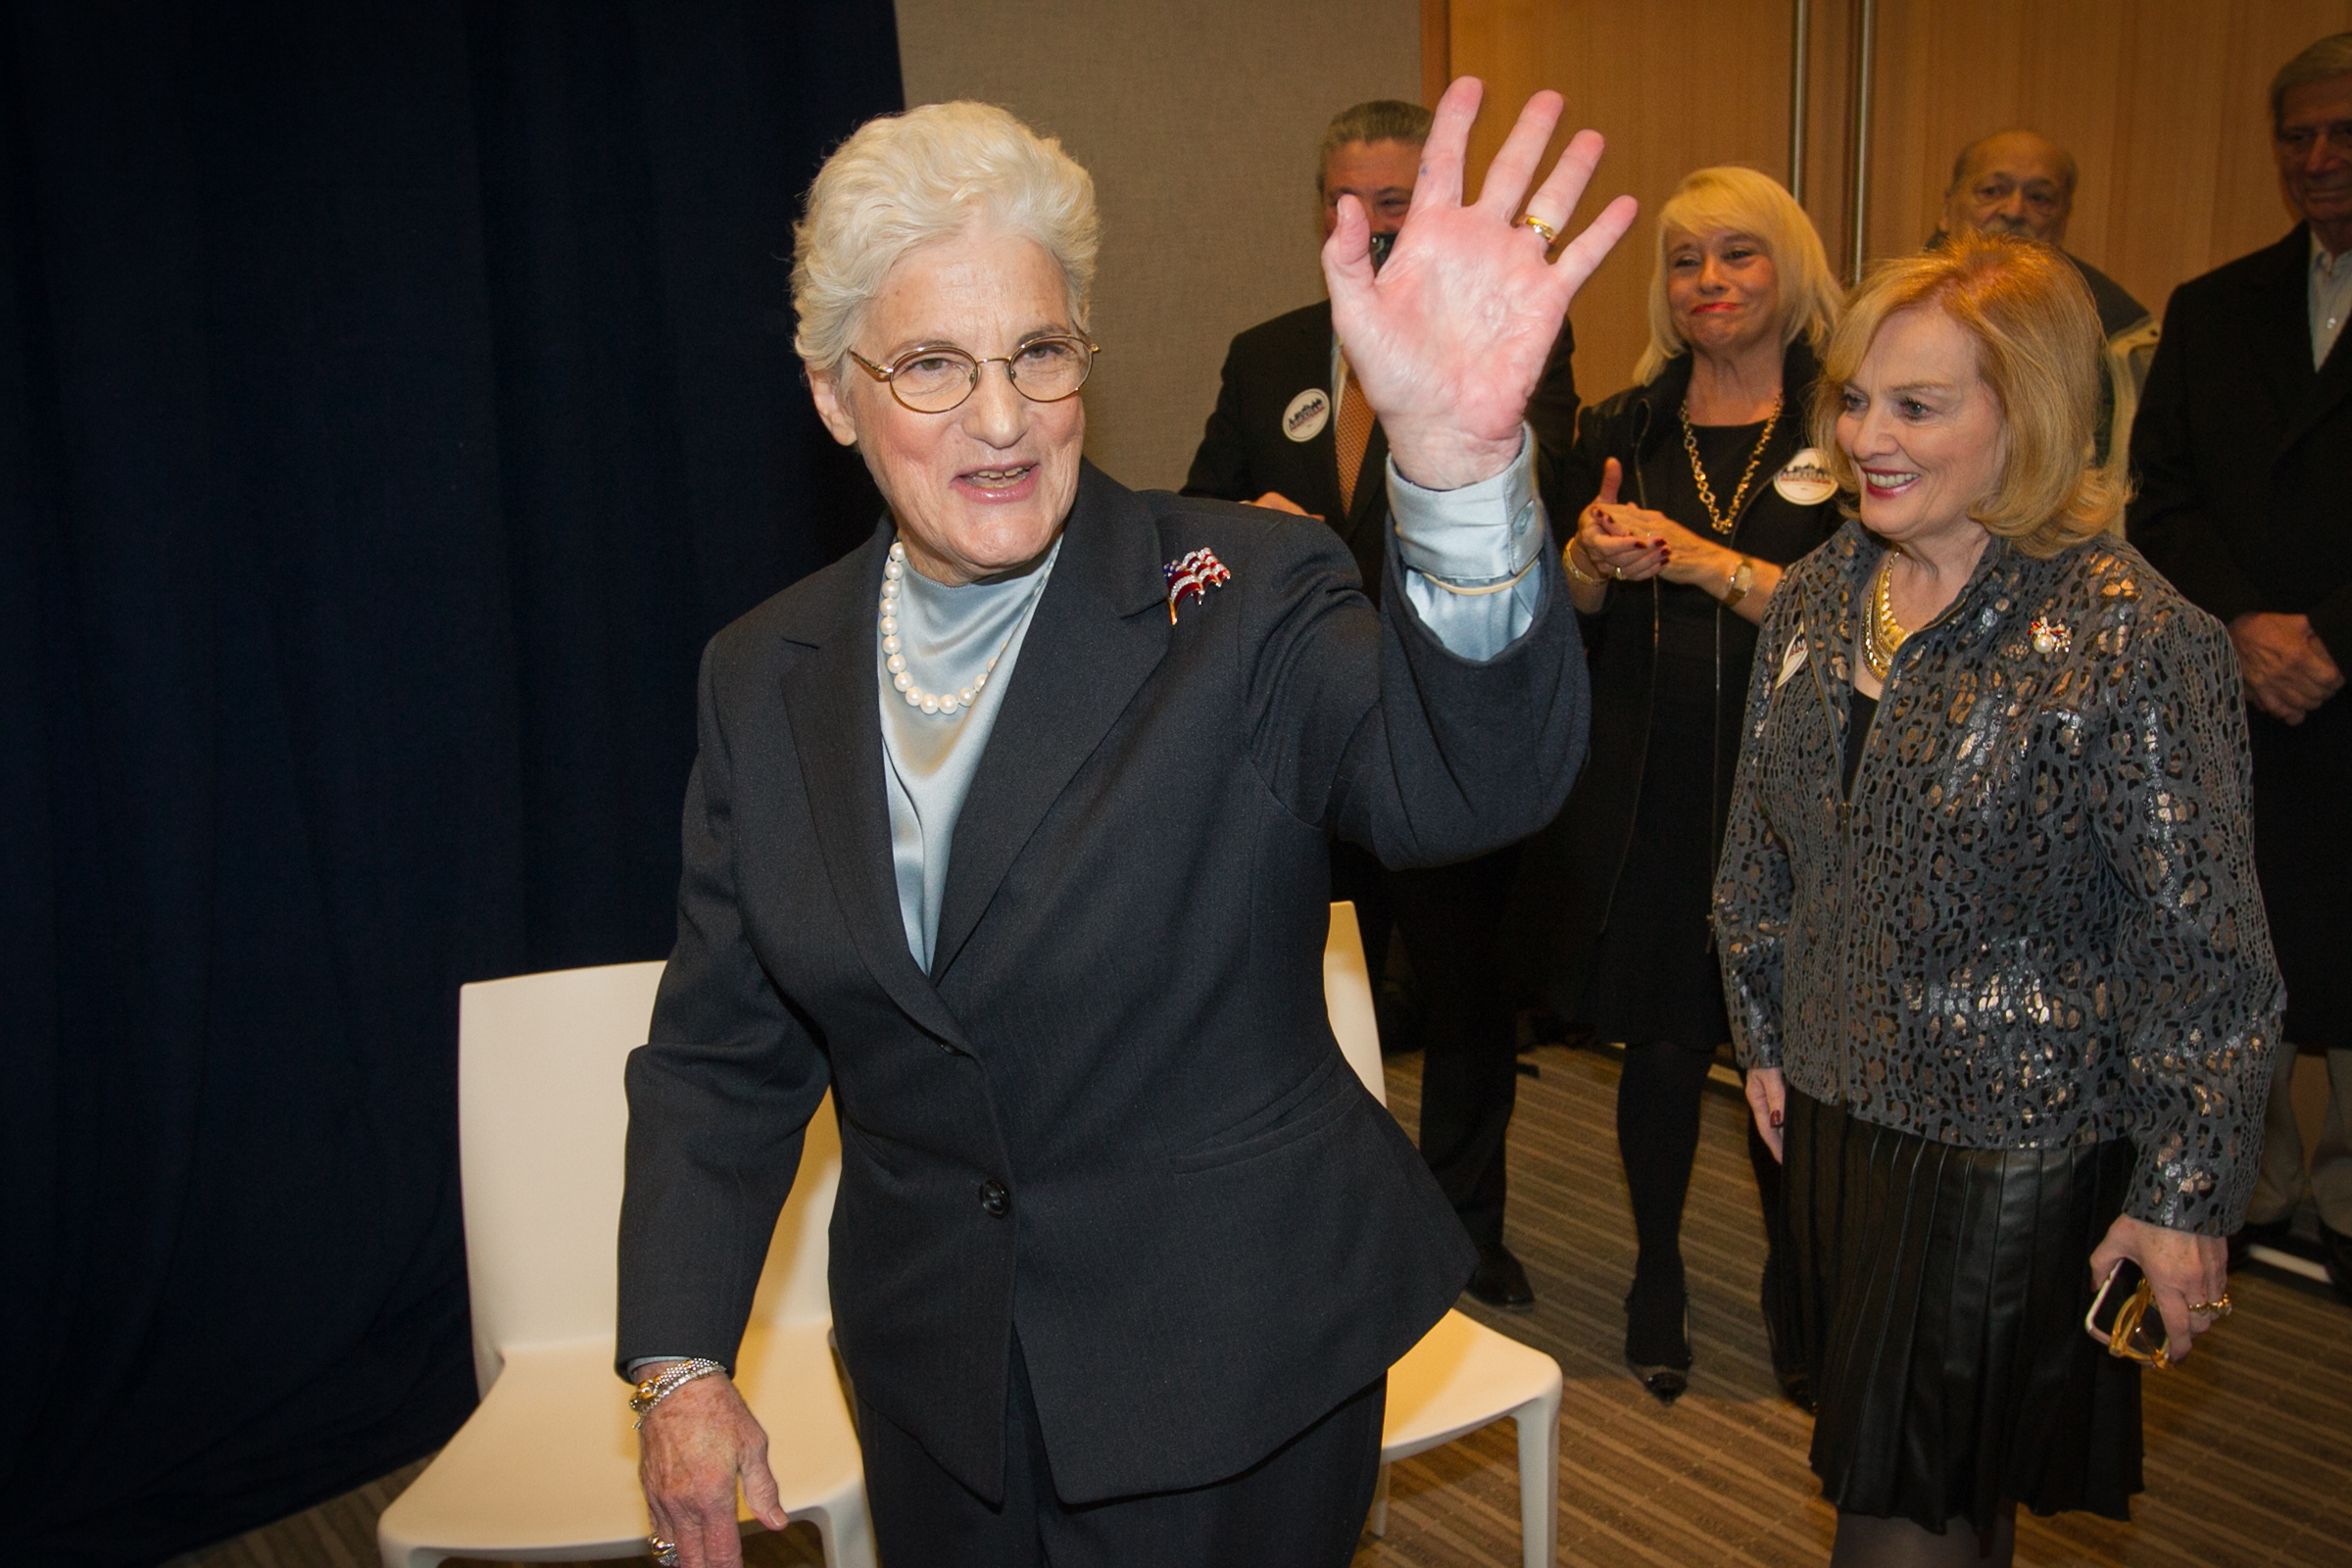 Lynne Abraham served 18 years as Philadelphia's district attorney.